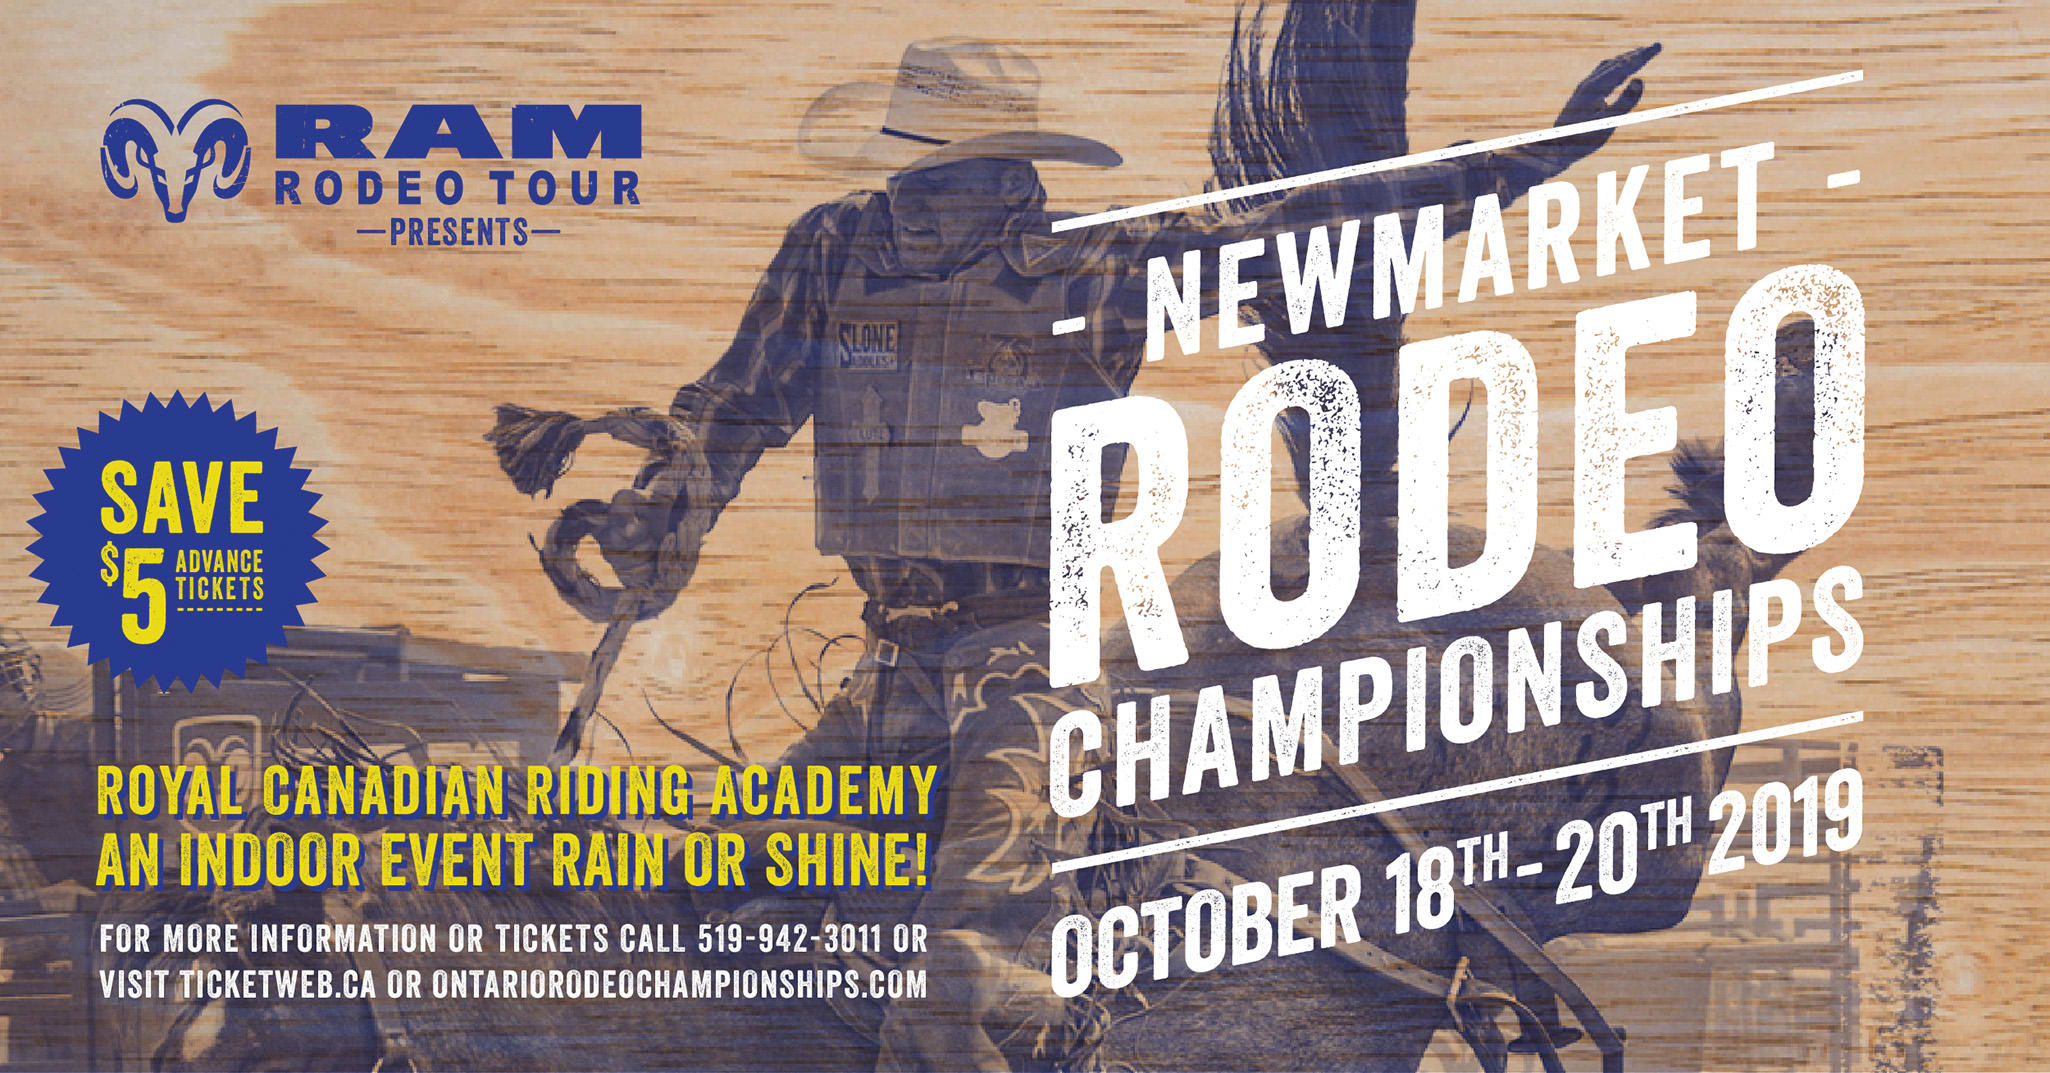 ram rodeo tour championships newmarket